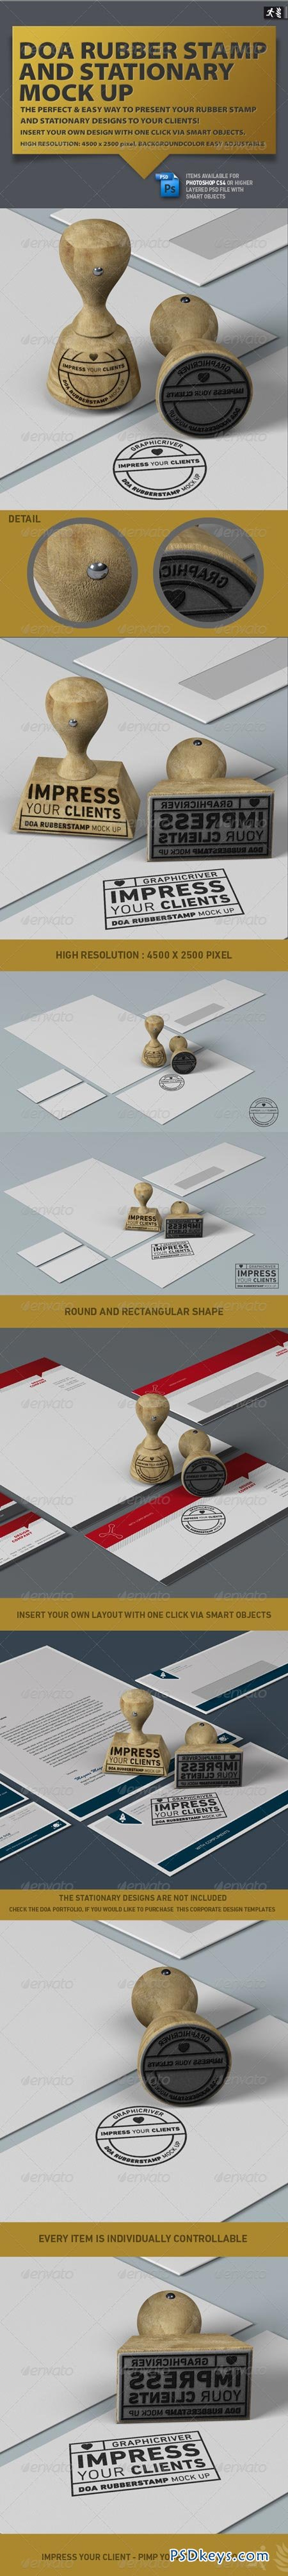 DOA Rubber Stamp and Stationary Mock Up 2479867